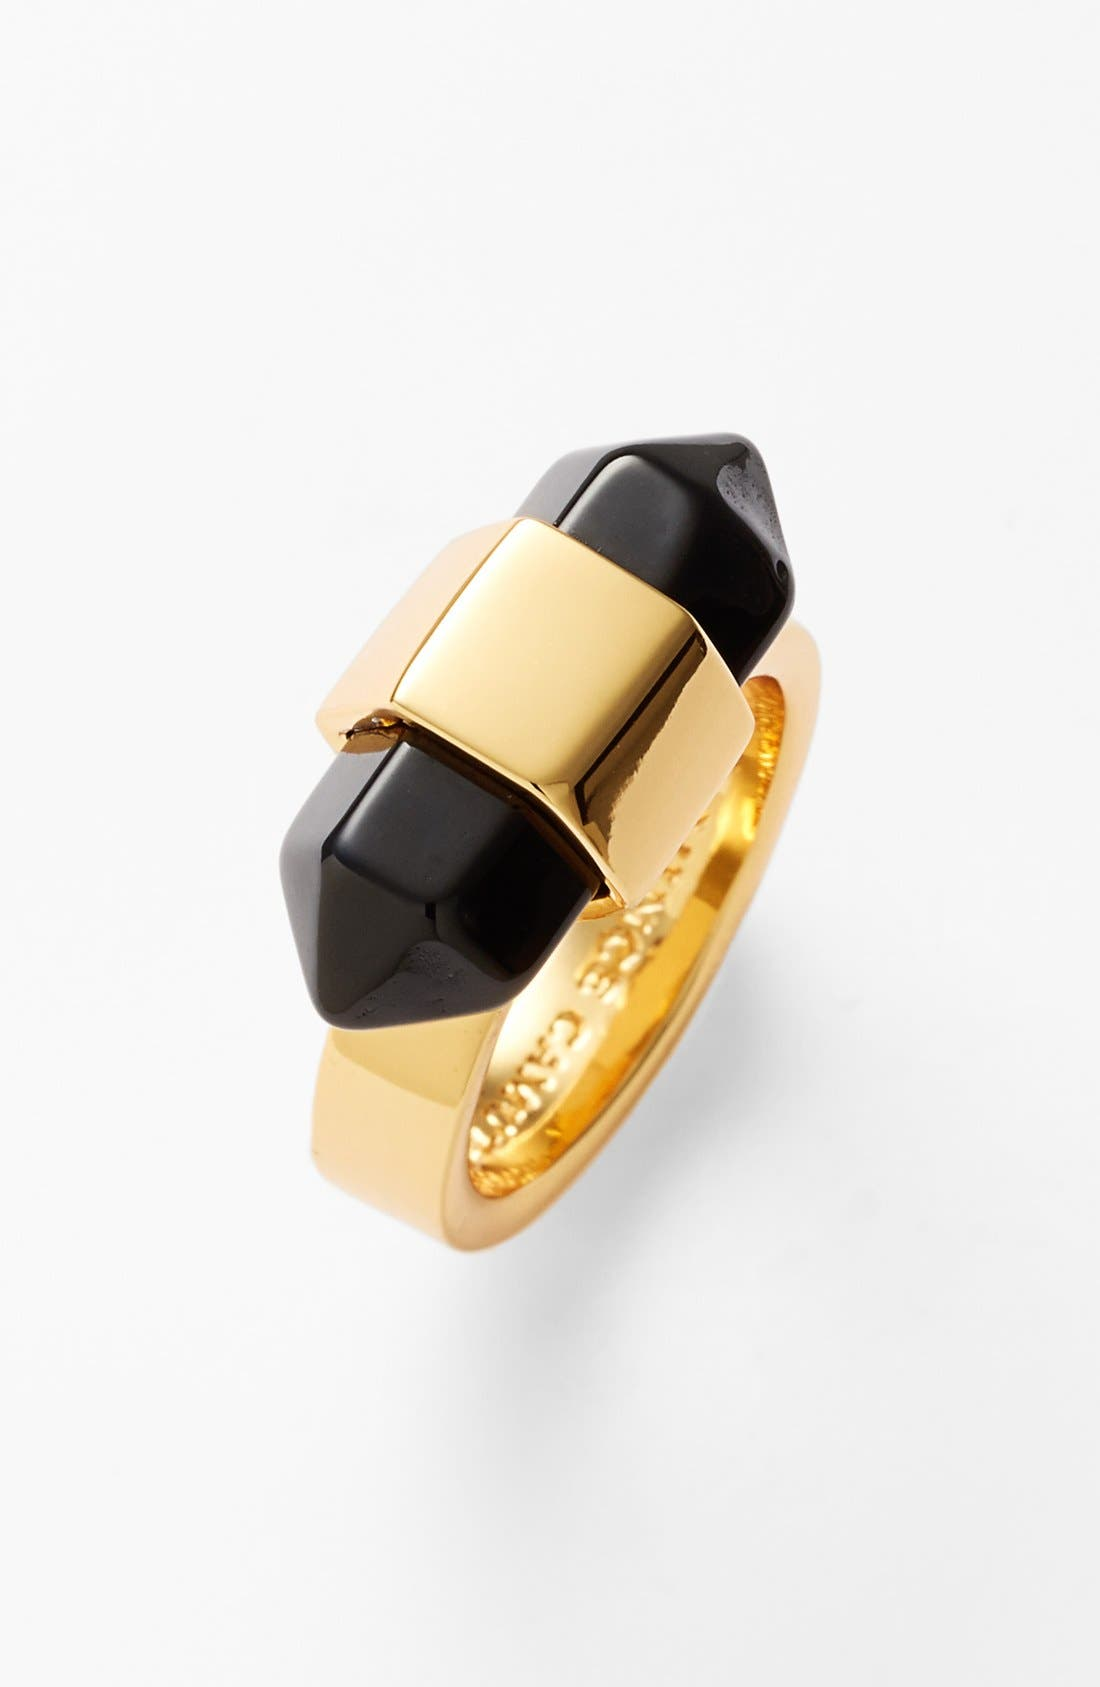 Alternate Image 1 Selected - Vince Camuto 'Bullet Proof' Stone Ring